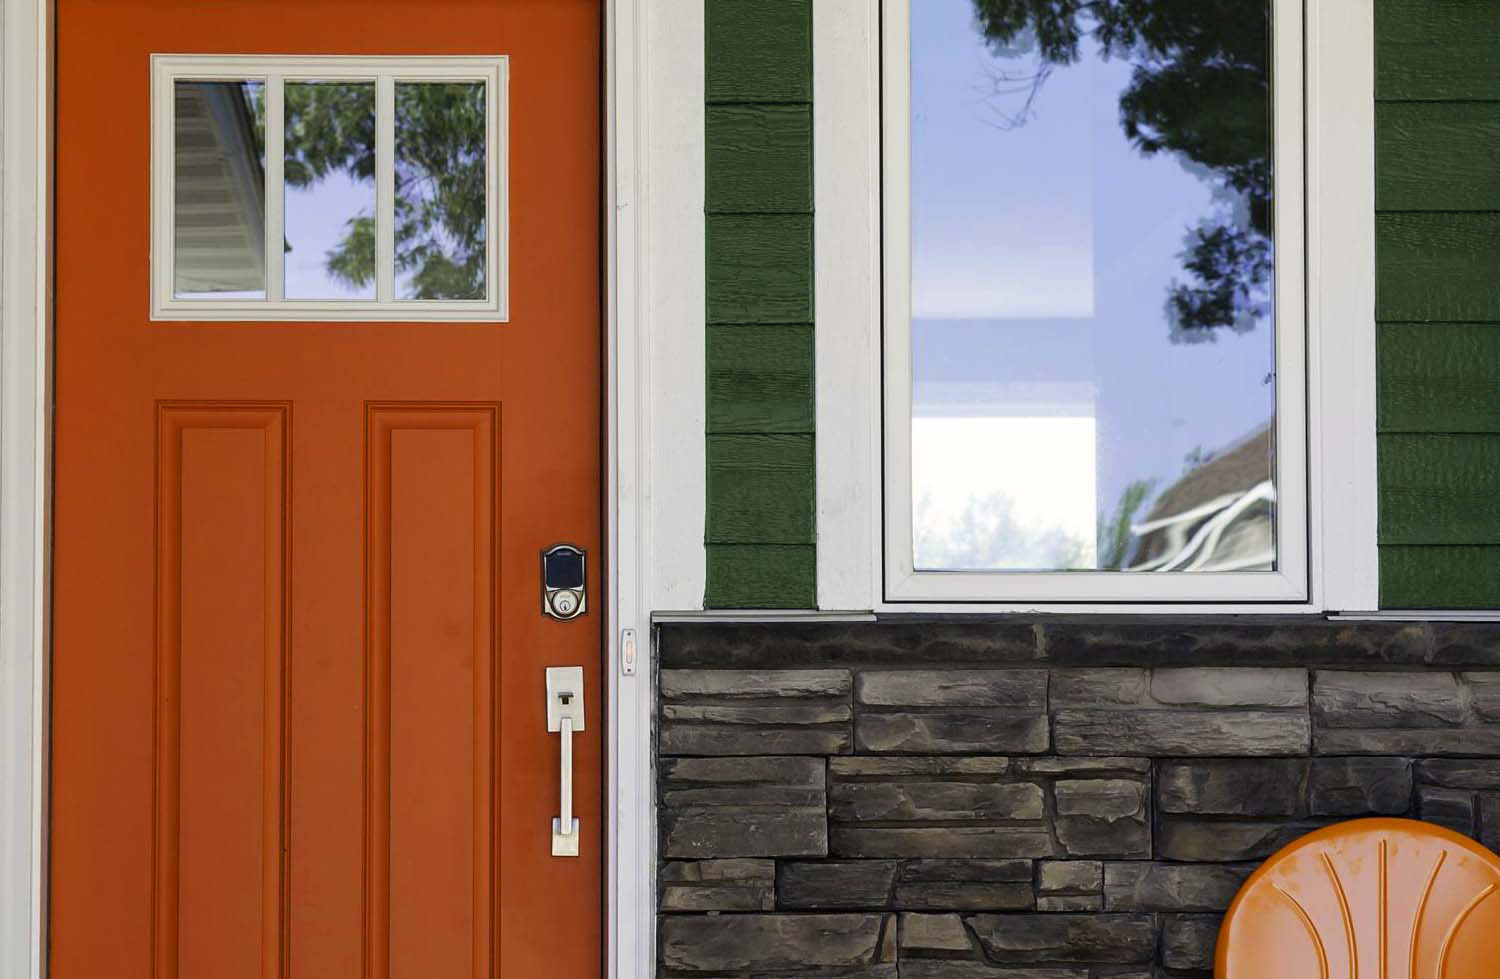 Dark Green house with a bright reddish orange front door and real stone veneer.